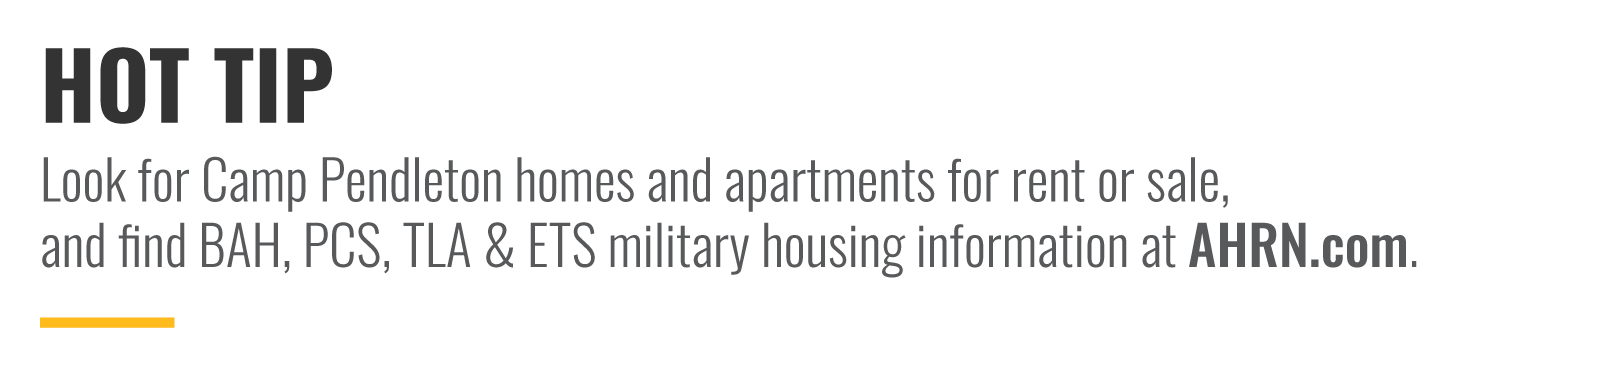 Hot Tip: Look for Camp Pendleton homes and apartments on AHRN.com